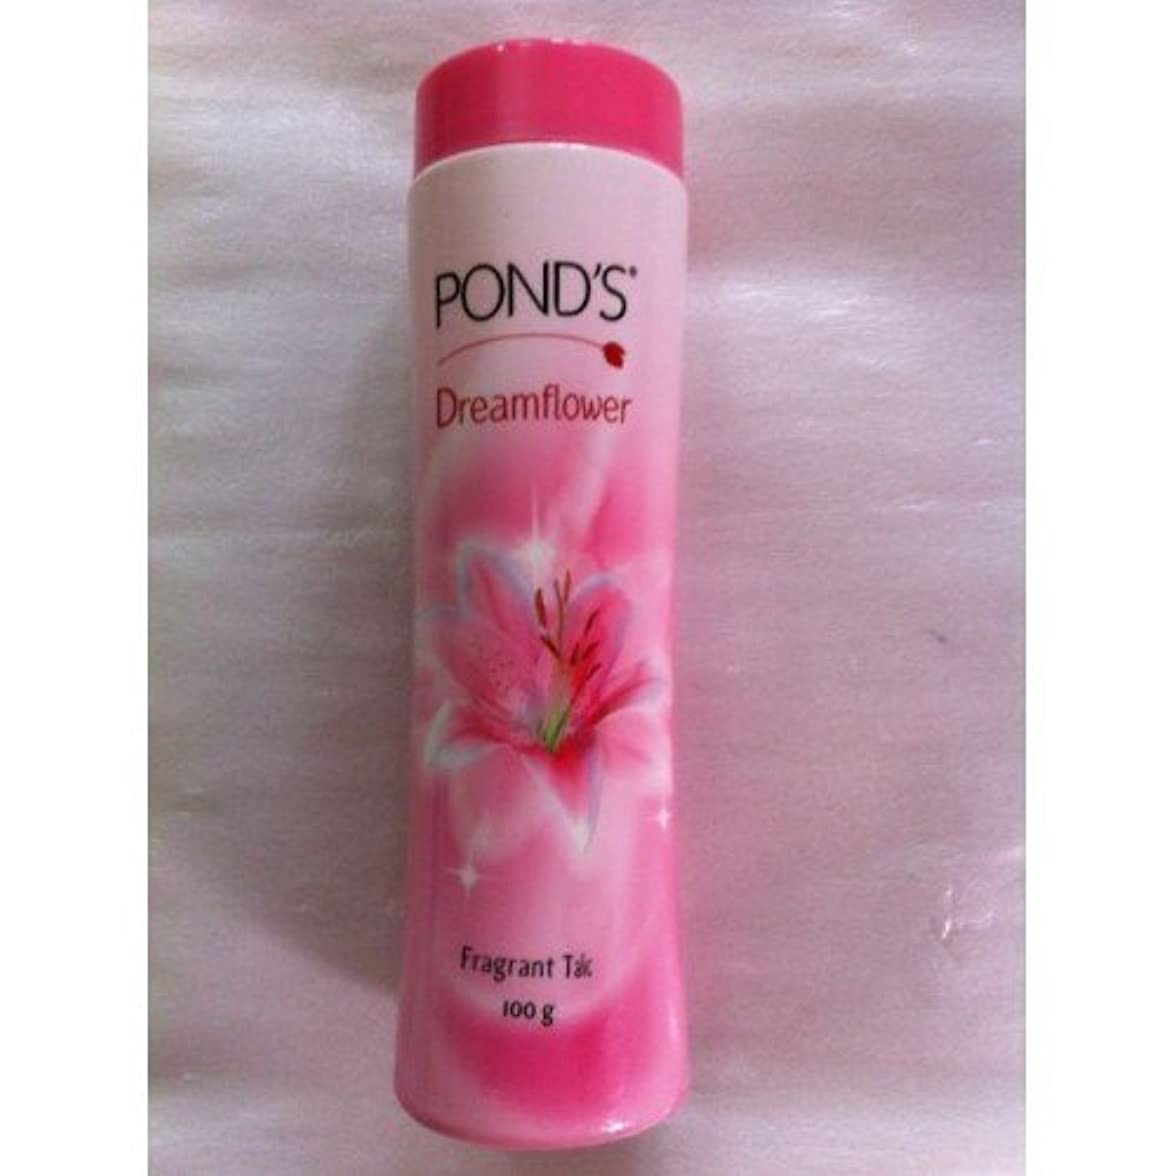 強制ベーリング海峡トランザクションPonds Dreamflower Magic Face Talcum Powder Skin Brightening Talc 100G X 2 =200G by Ponds Dreamflower Talc